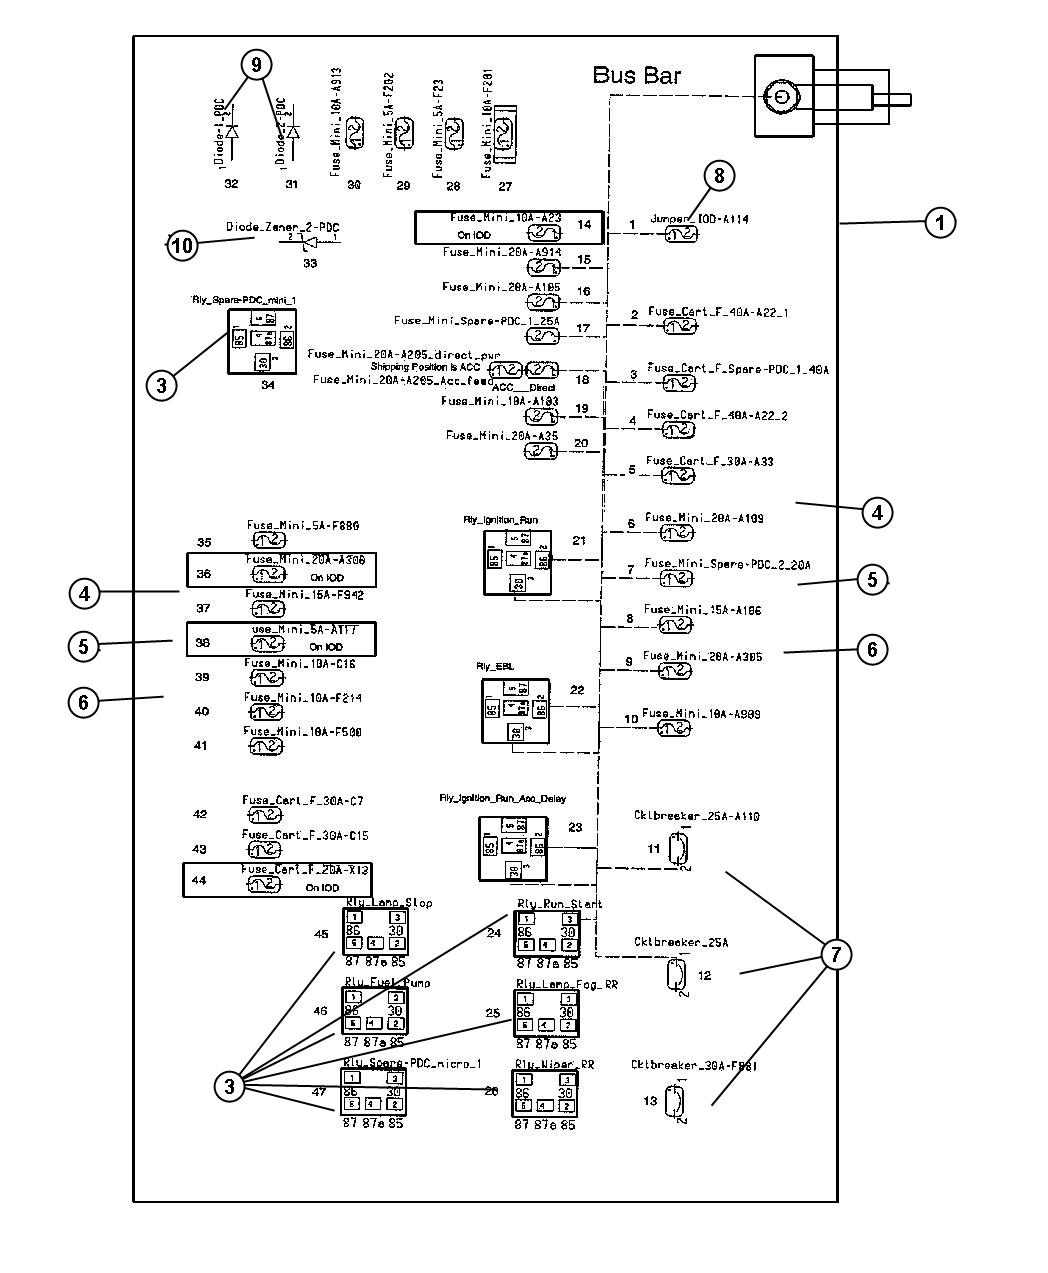 hight resolution of chrysler sebring fuse box diagram on chrysler 300 2007 fuel pump 1999 chrysler 300m interior fuse box diagram 1999 chrysler 300m fuse diagram